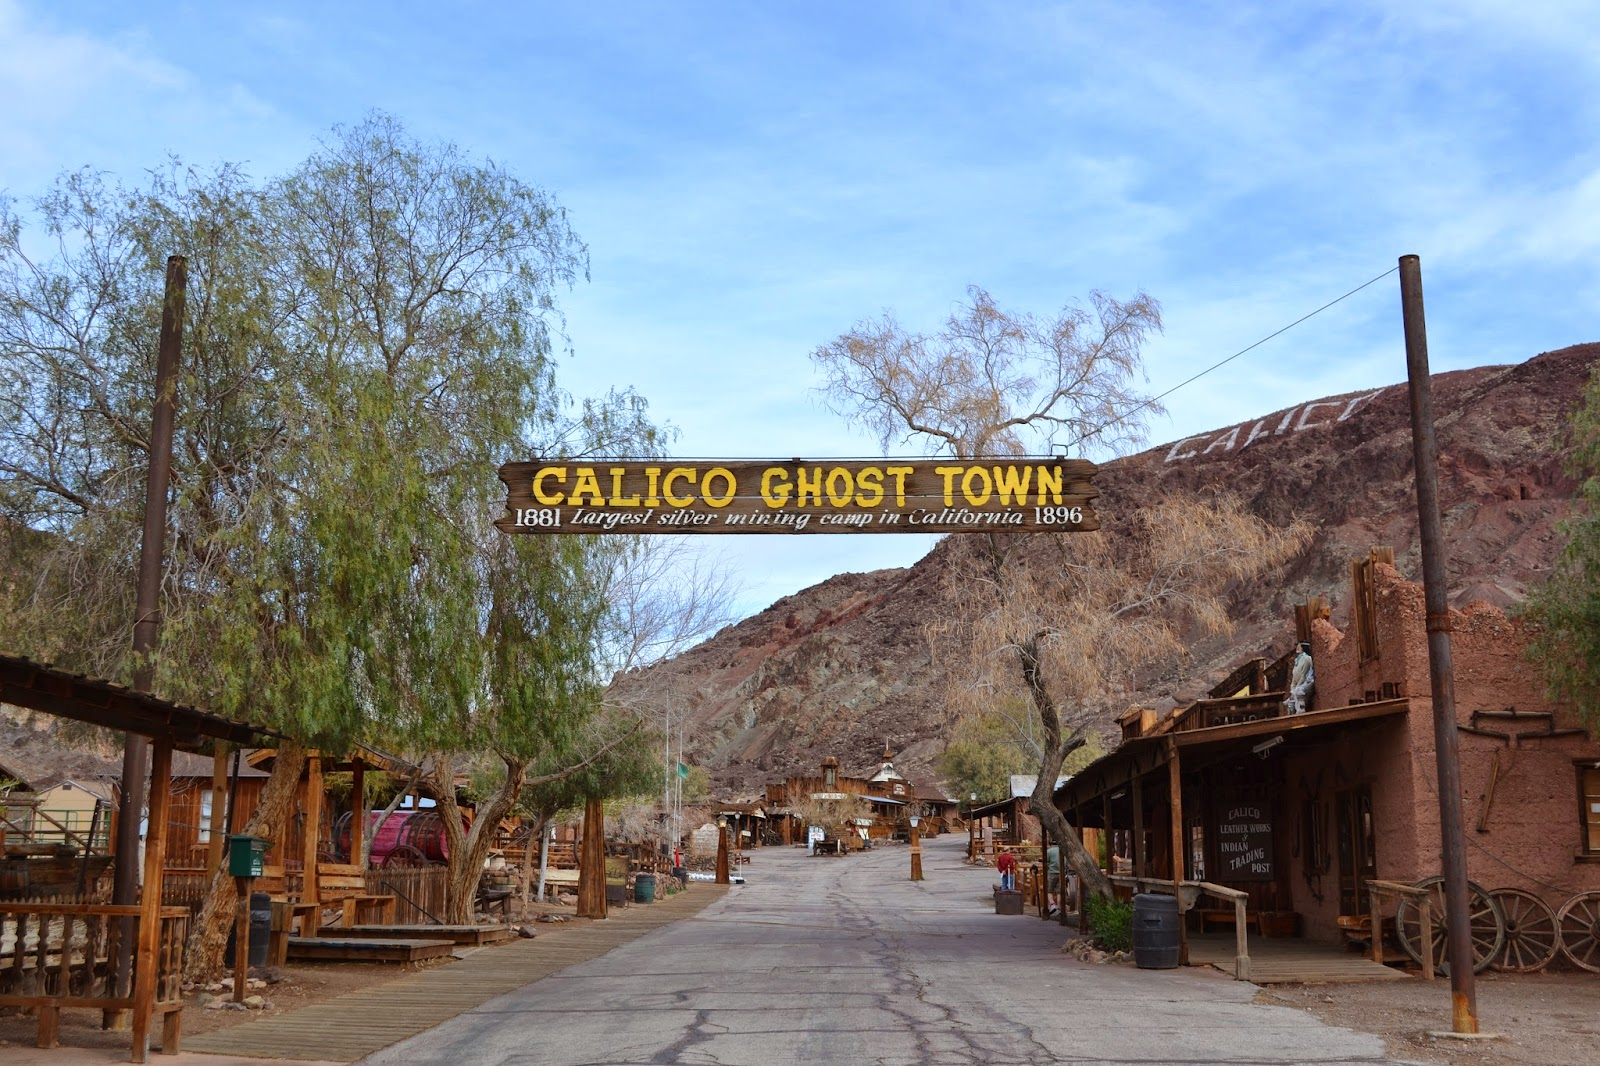 No Bad Days RVing: Calico Ghost Town & Campground